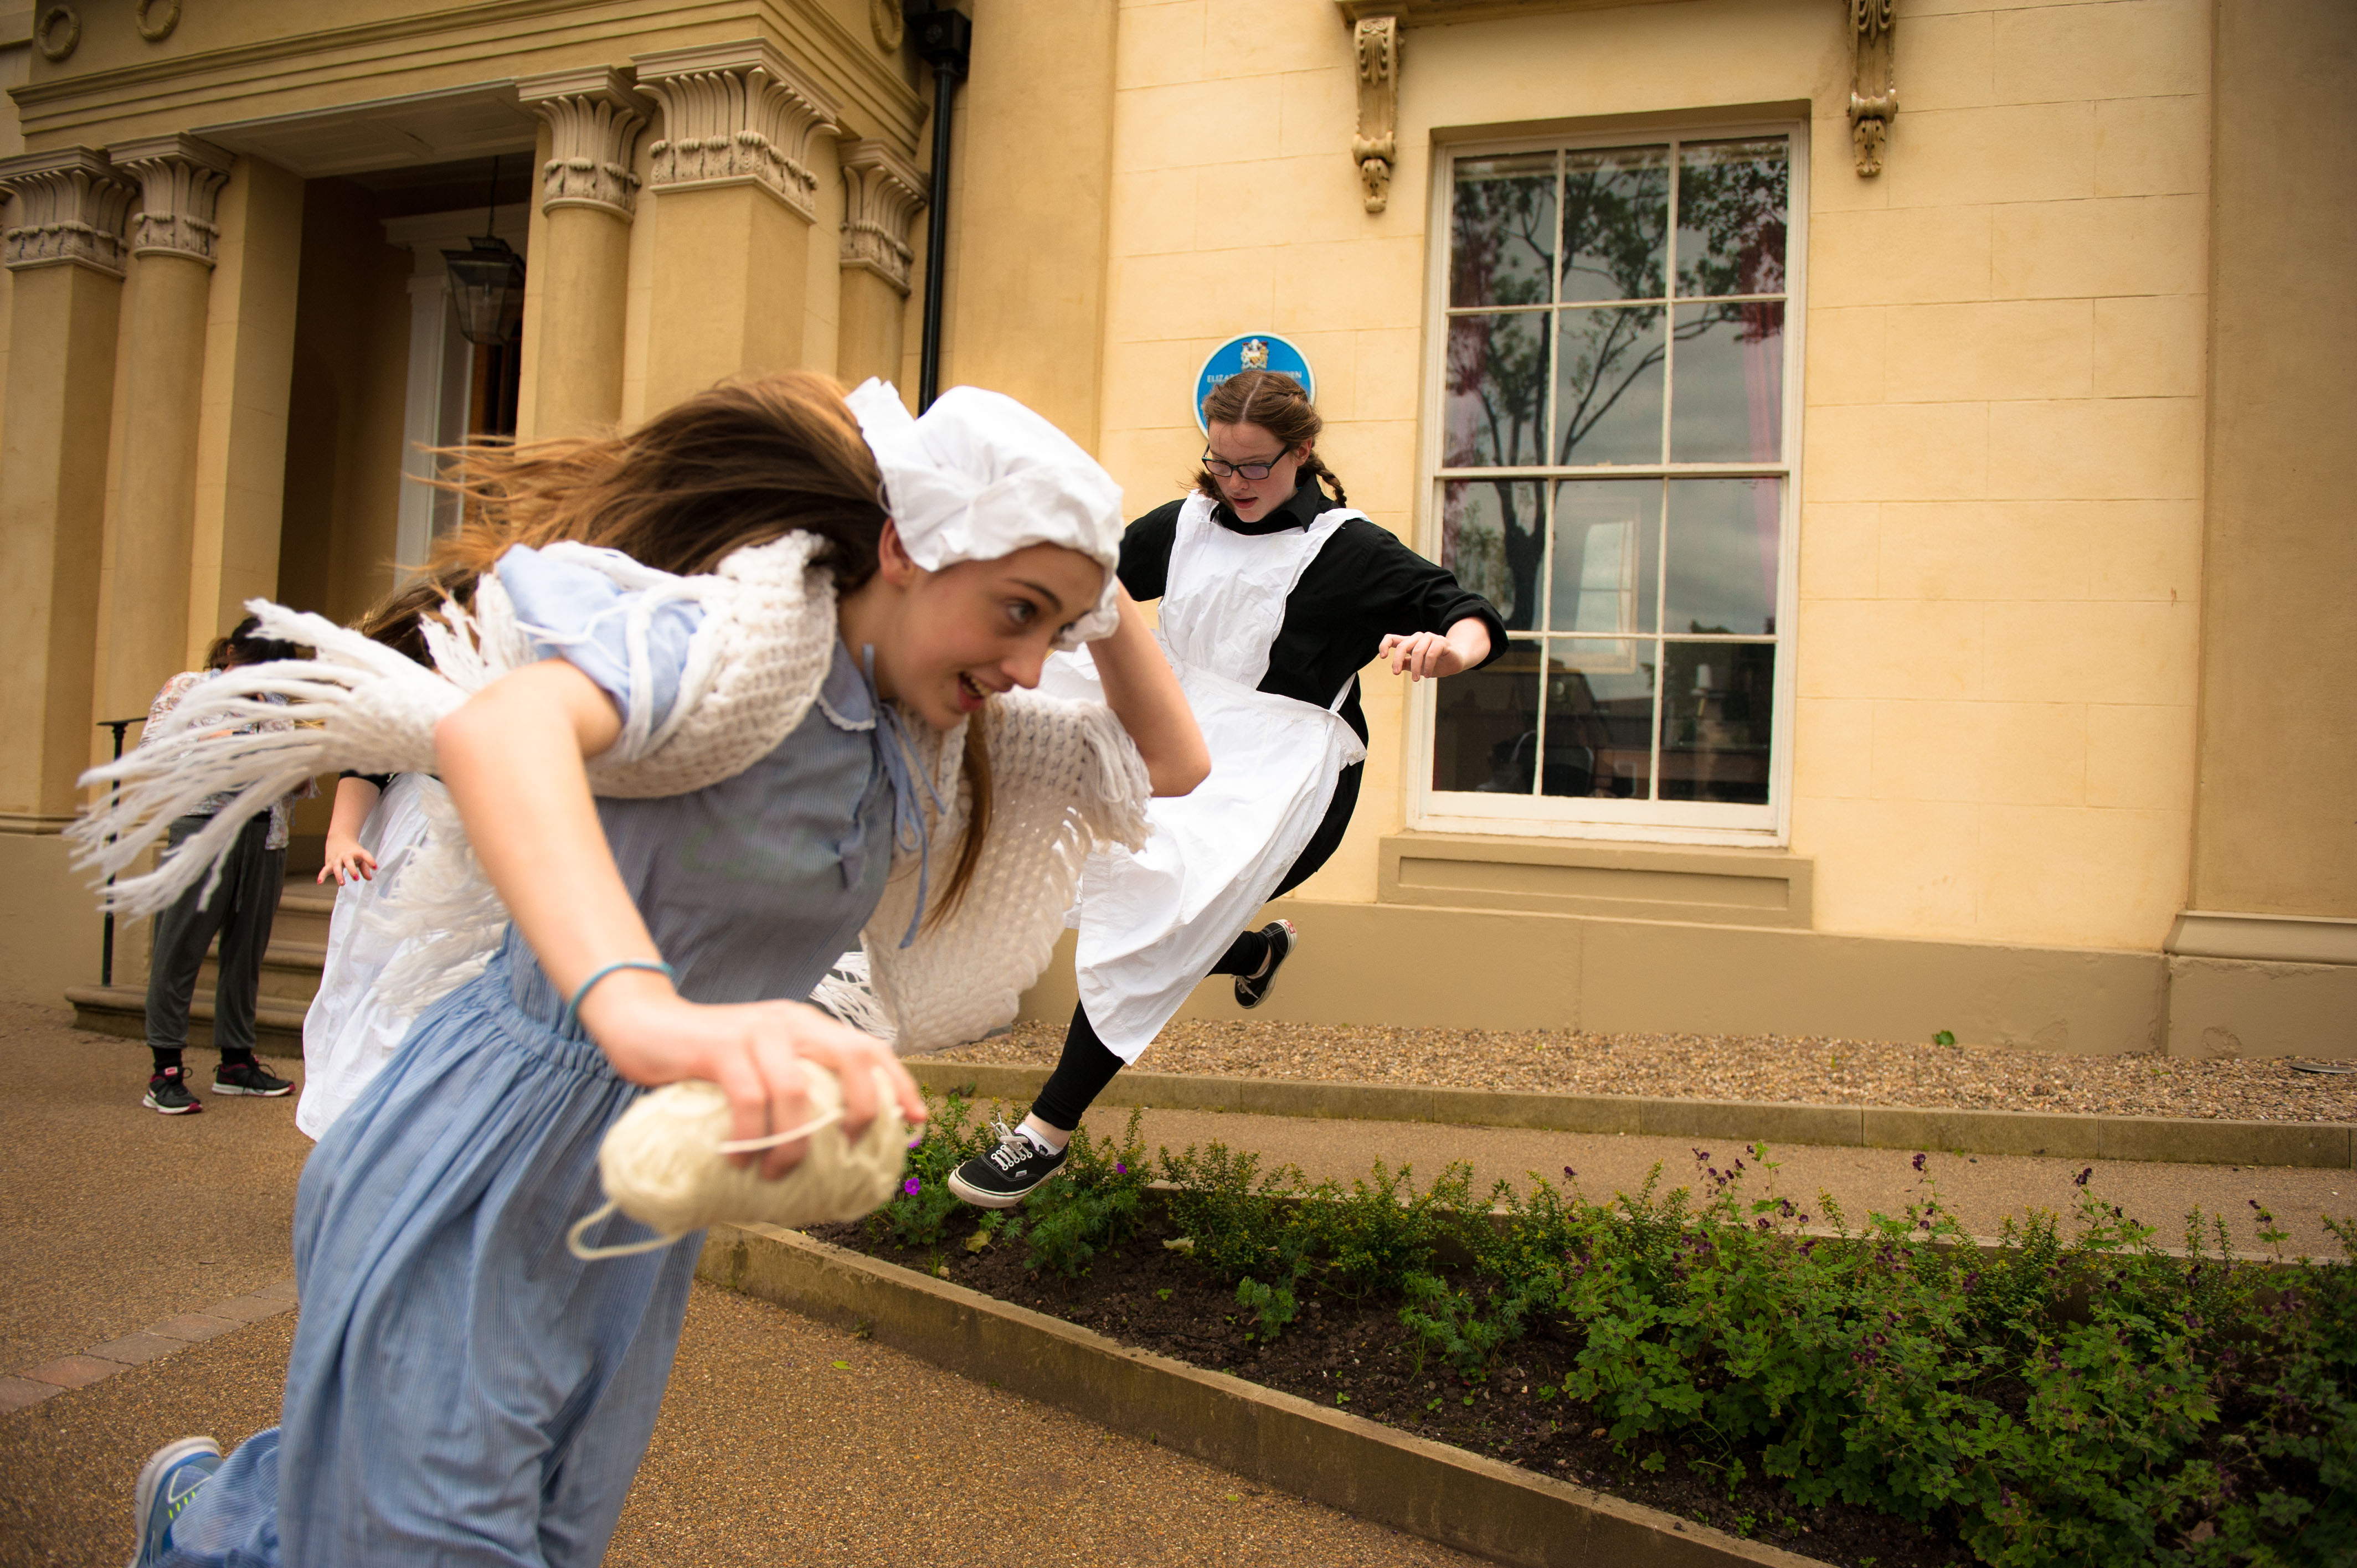 Two young women in maid dresses run outside of Elizabeth Gaskell House.